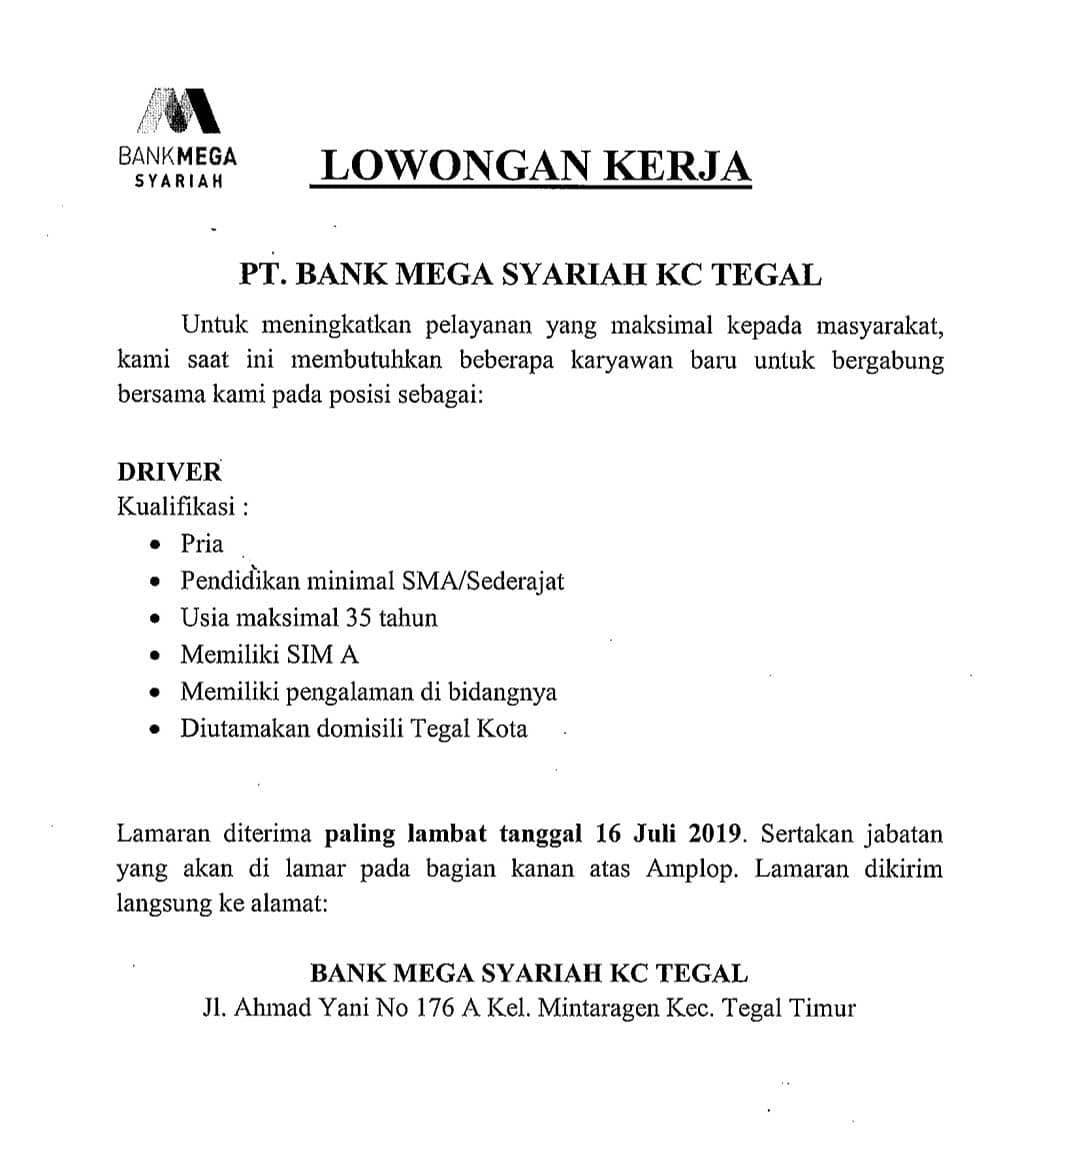 PT. BANK MEGA SYARIAH KC TEGAL